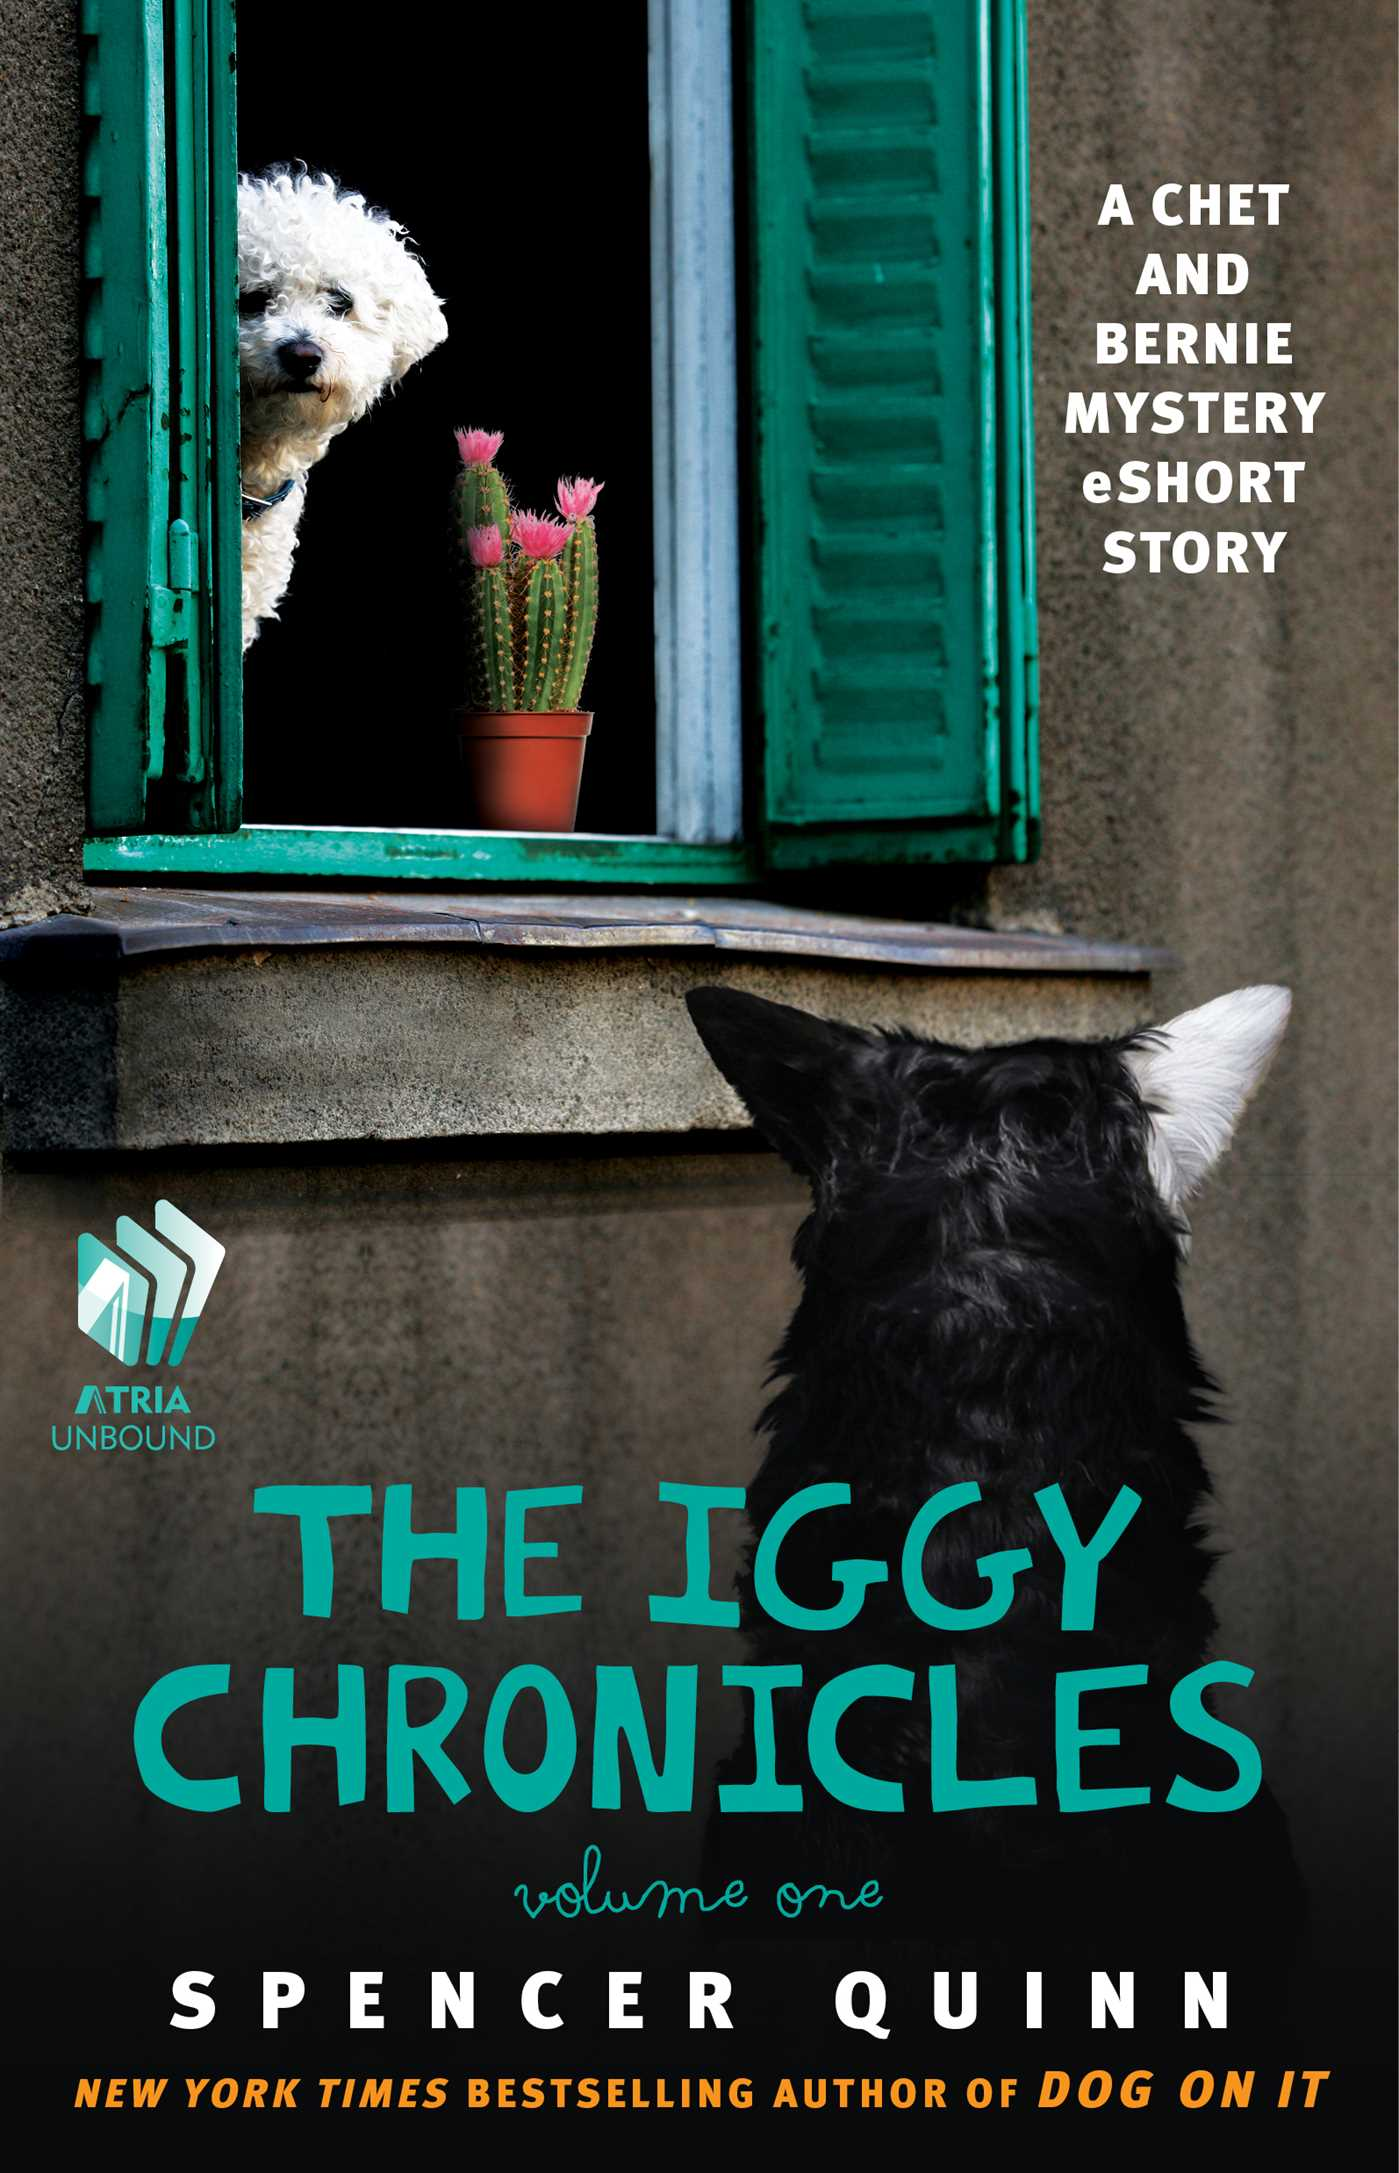 The-iggy-chronicles-volume-one-9781476703602_hr